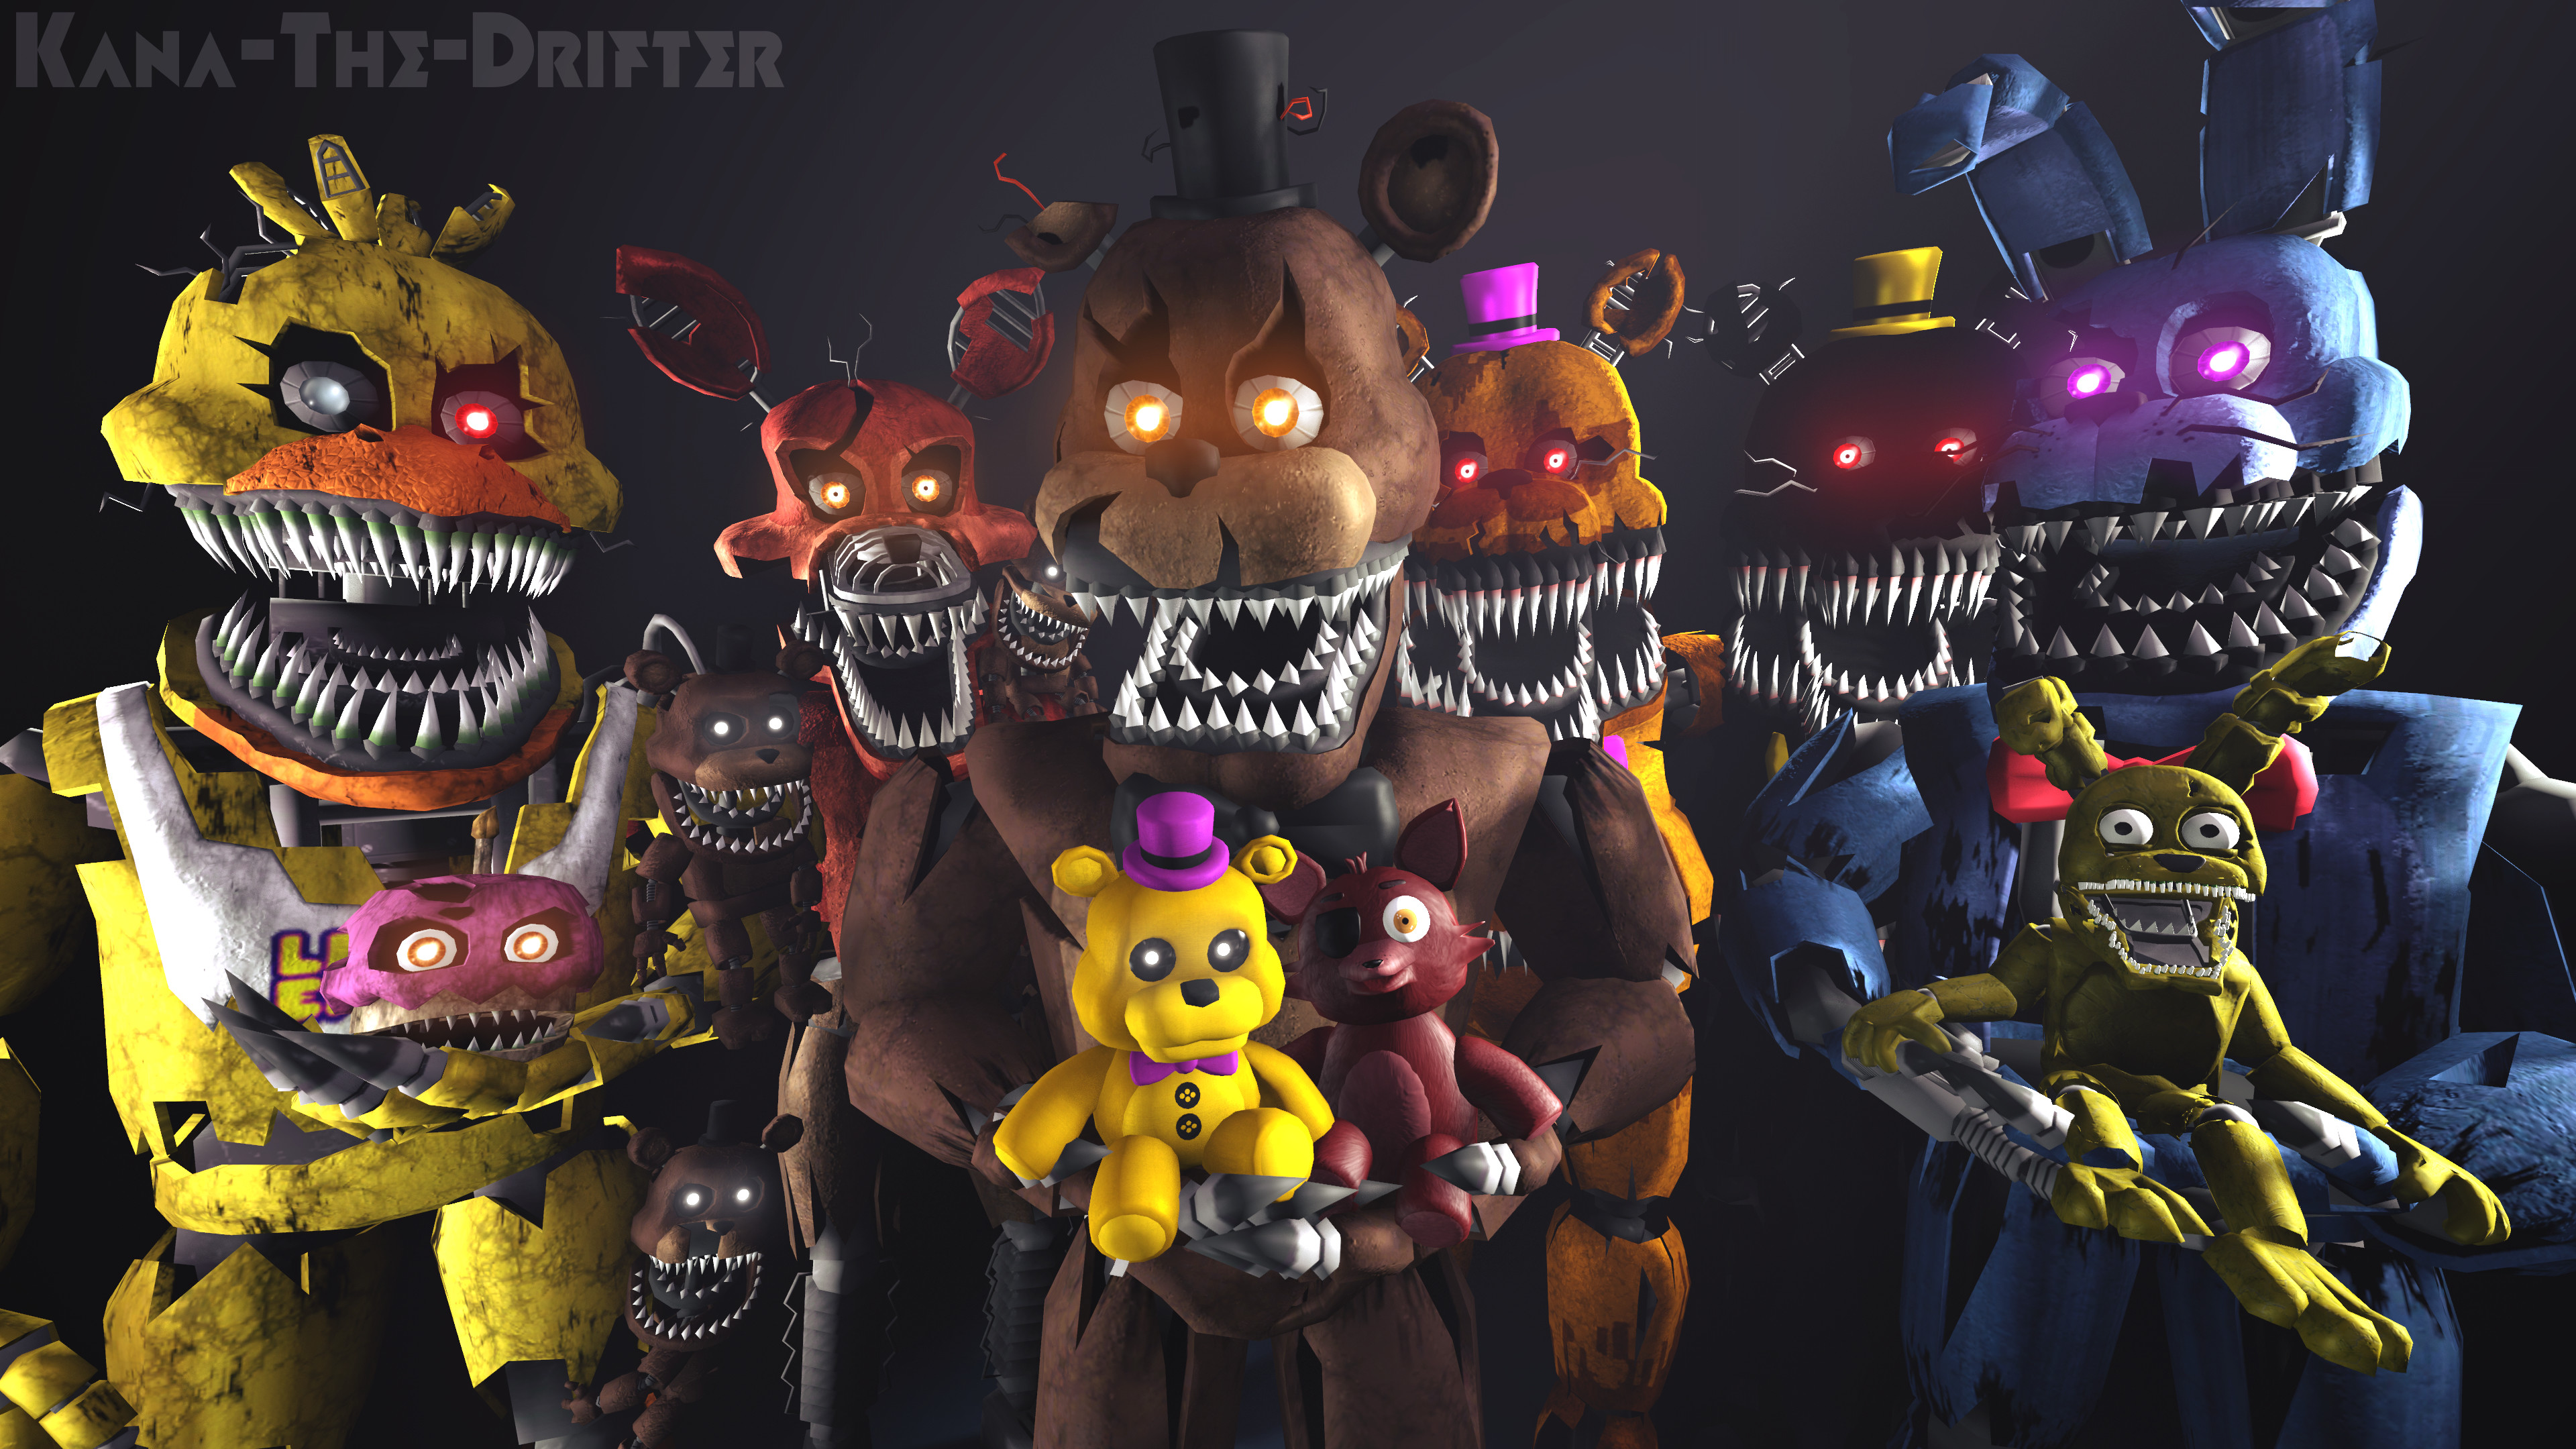 Res: 3840x2160, We All Are Still Your Friends (FNAF SFM Wallpaper) by Kana-The-